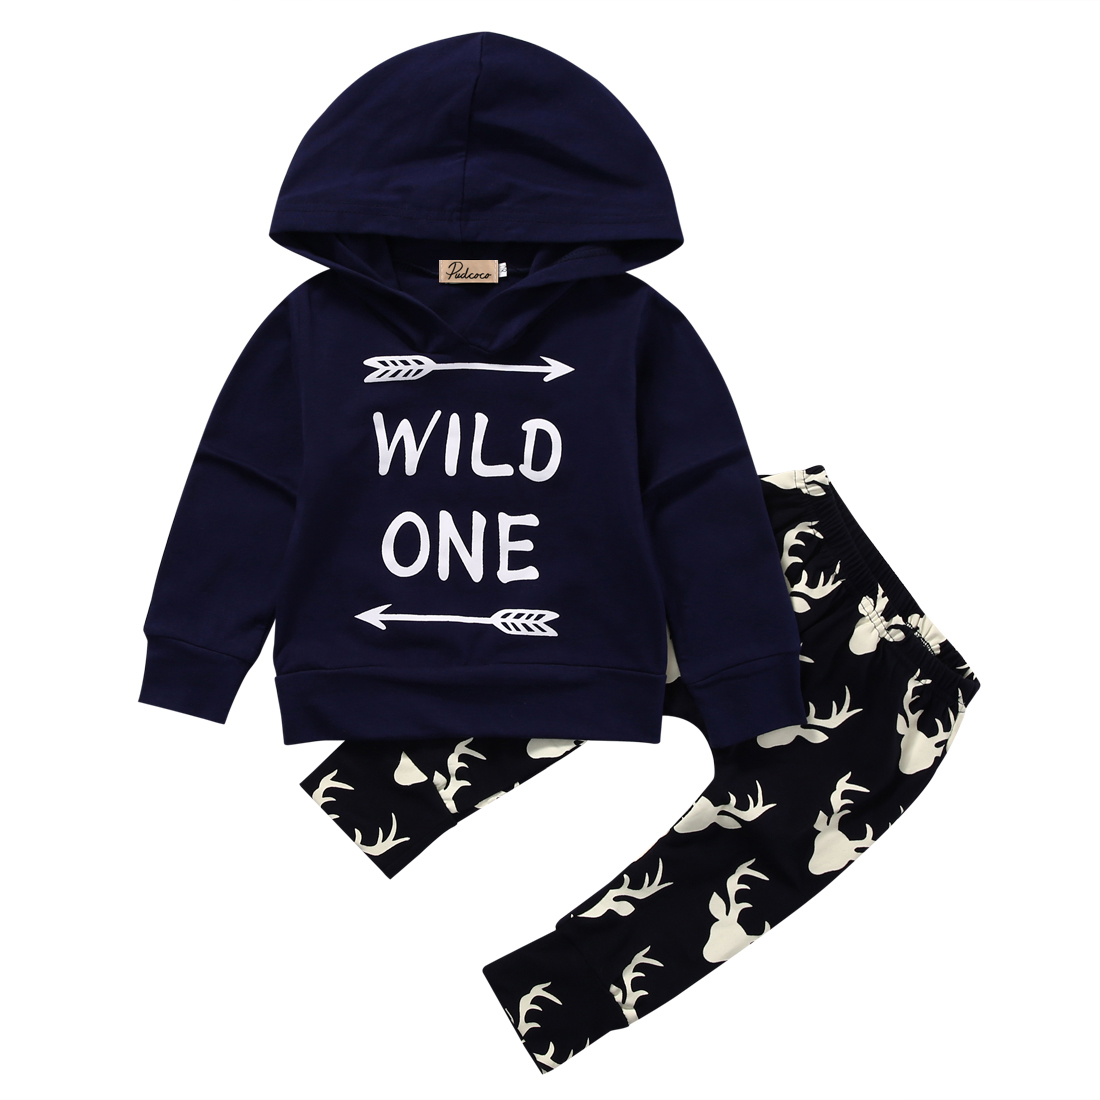 Toddler Infant Kids Baby Boy Letter Hoodie Tops Sweatshirt Coat Outerwear Outfit